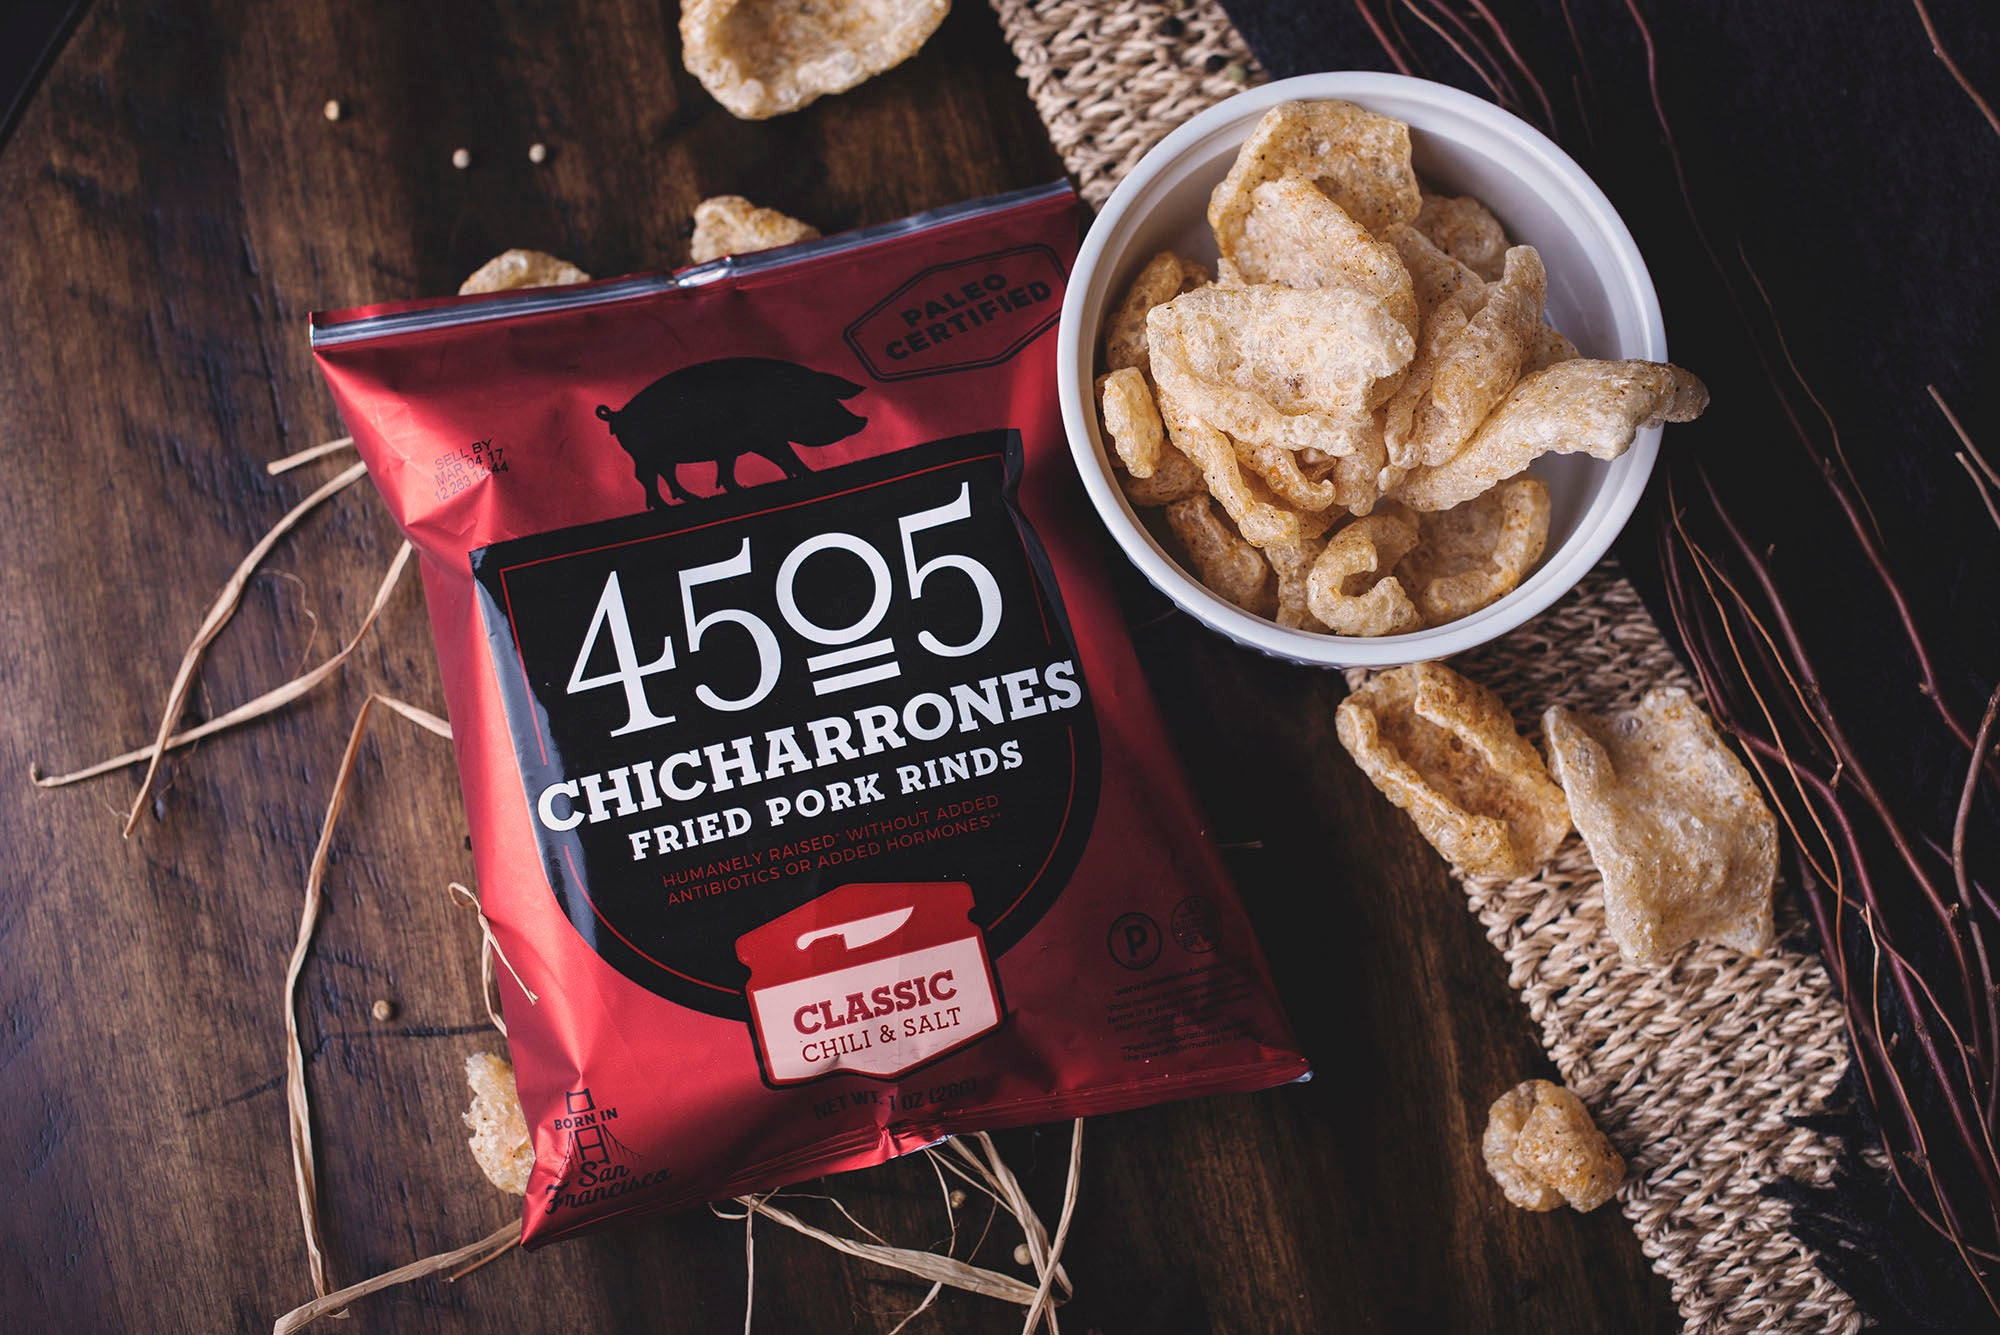 <a href='https://4505meats.com/index.php/meat.html/' target='_blank'><b>4505 Meats Classic Chicharrones -</b></a><br> These kettle-cooked pork skins are sourced from a collective of small family farms. A savory snack that can serve as a spicy topping or as the perfect sidekick to beer, cocktails or sparkling libations of all kinds.